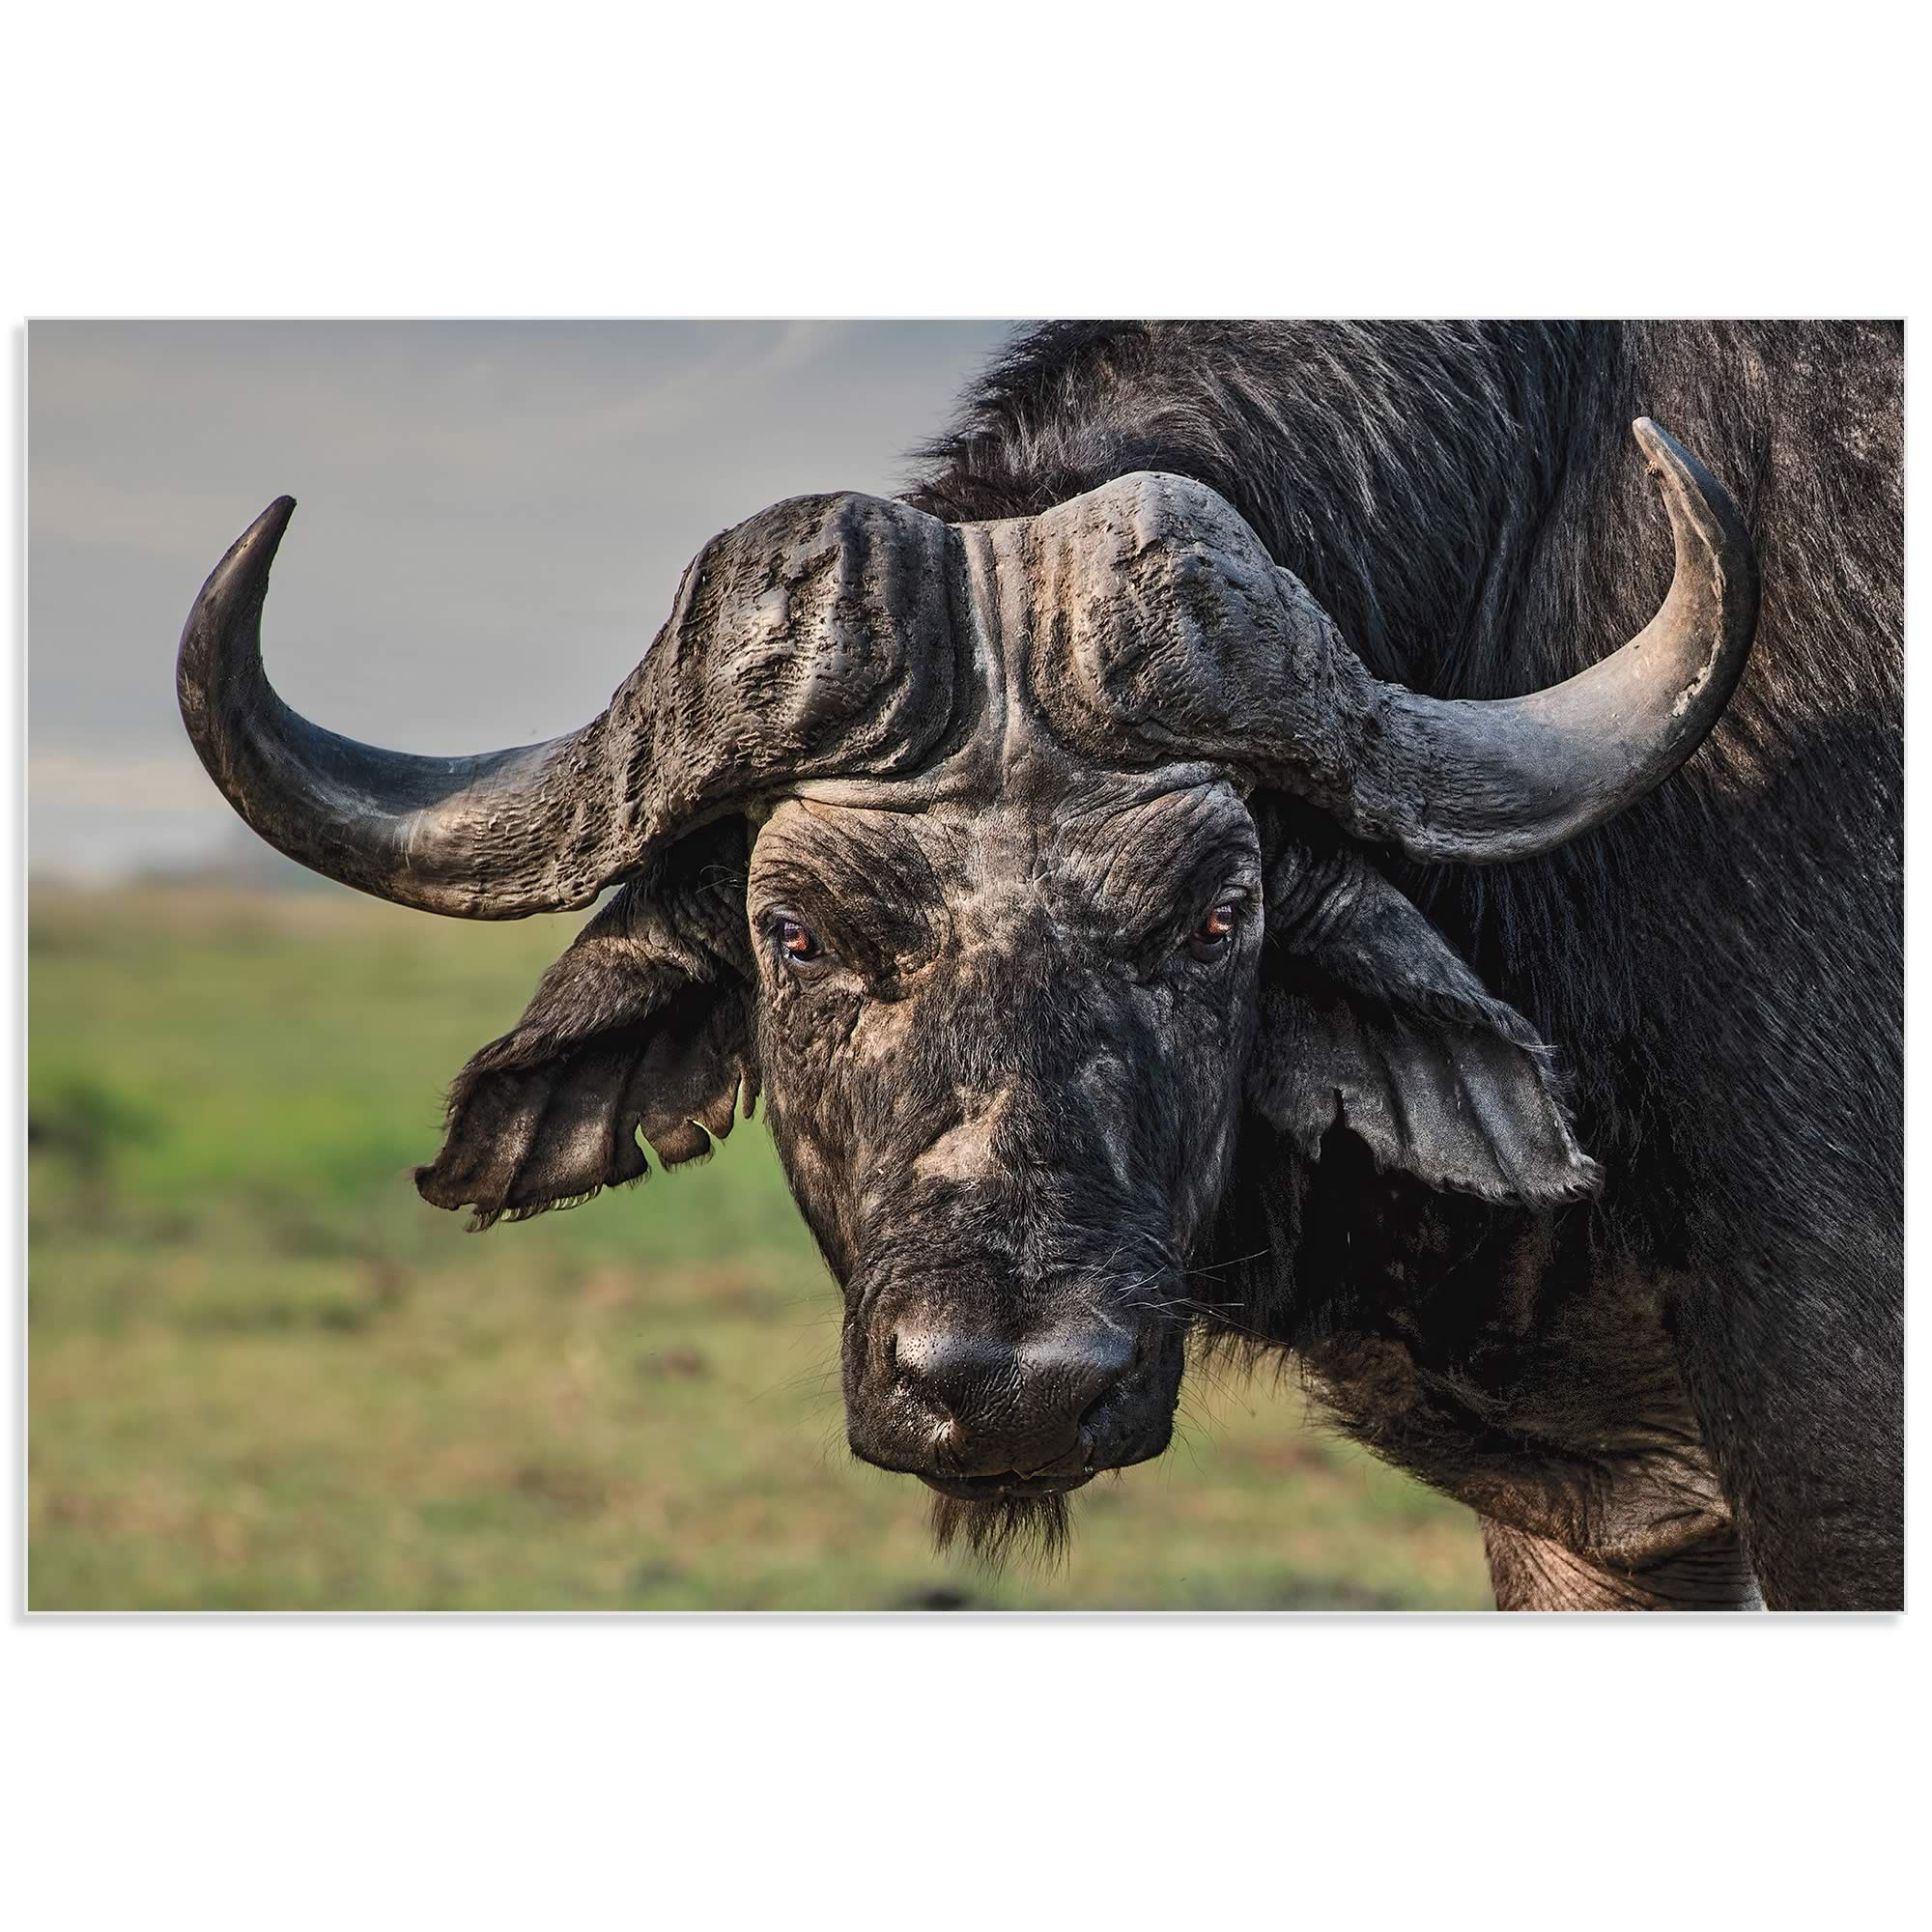 The Old Fighter Buffalo by Piet Flour - Buffalo Wall Art on Metal or Acrylic - Alternate View 2